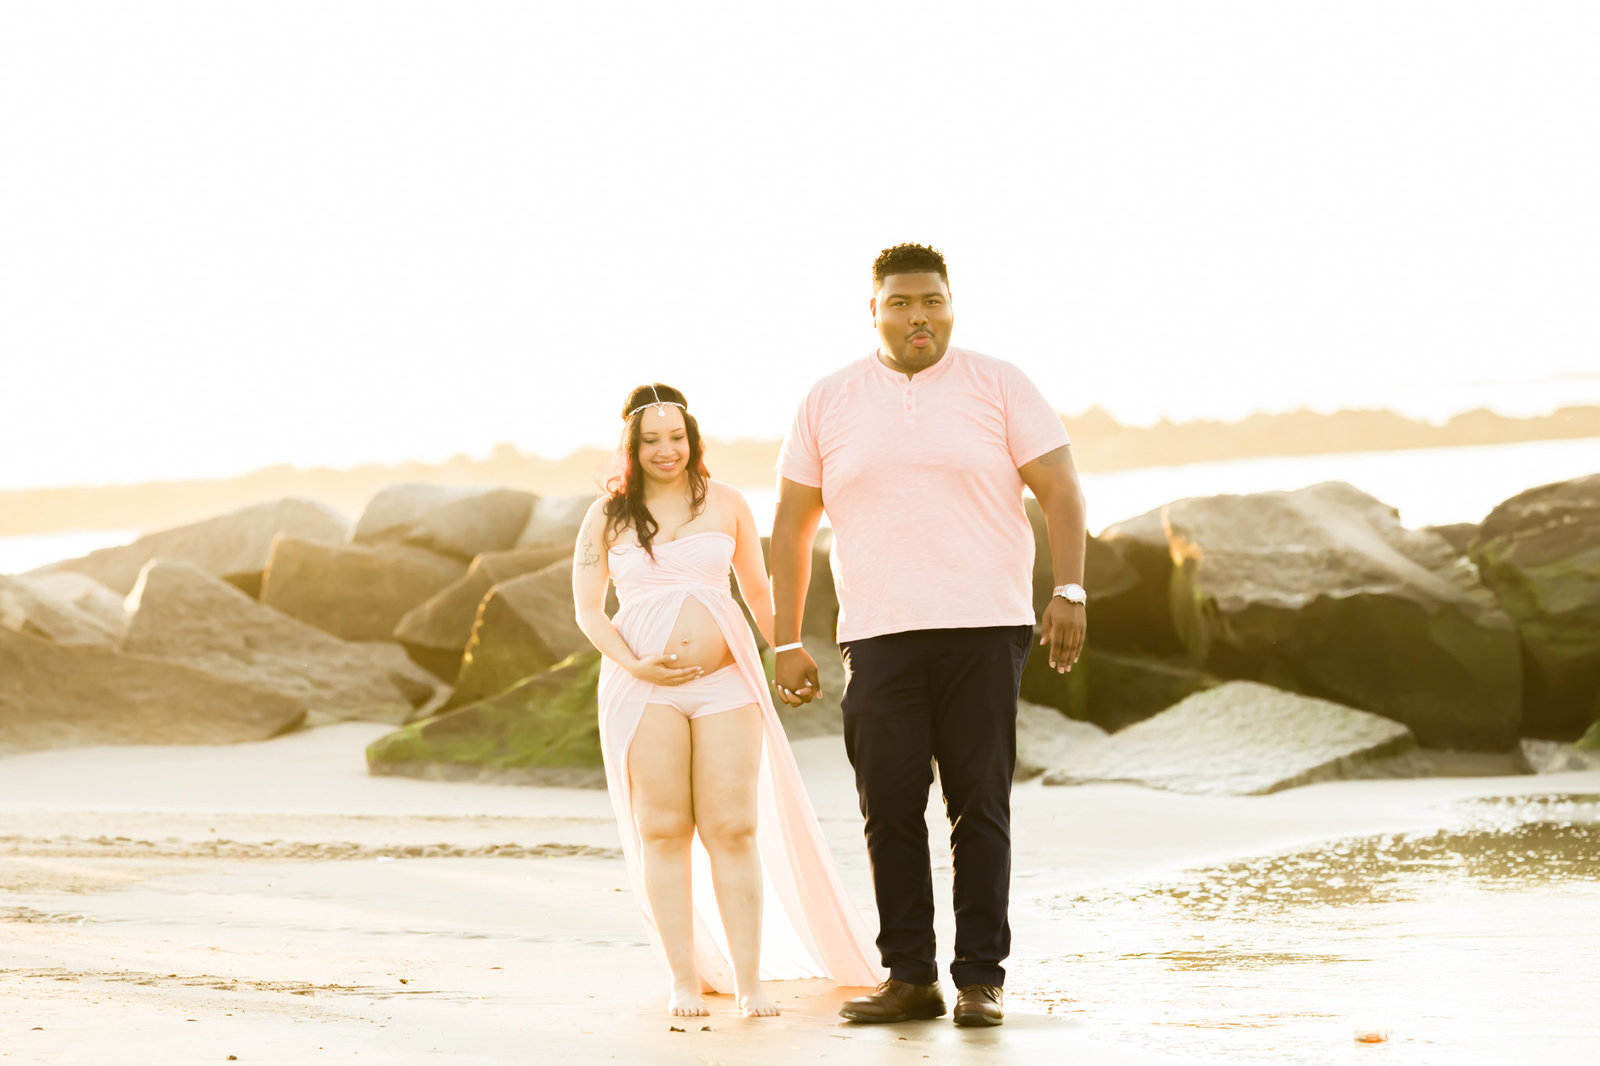 Dreamcatcher Rose Studios - Maternity - walking down the beach - candid